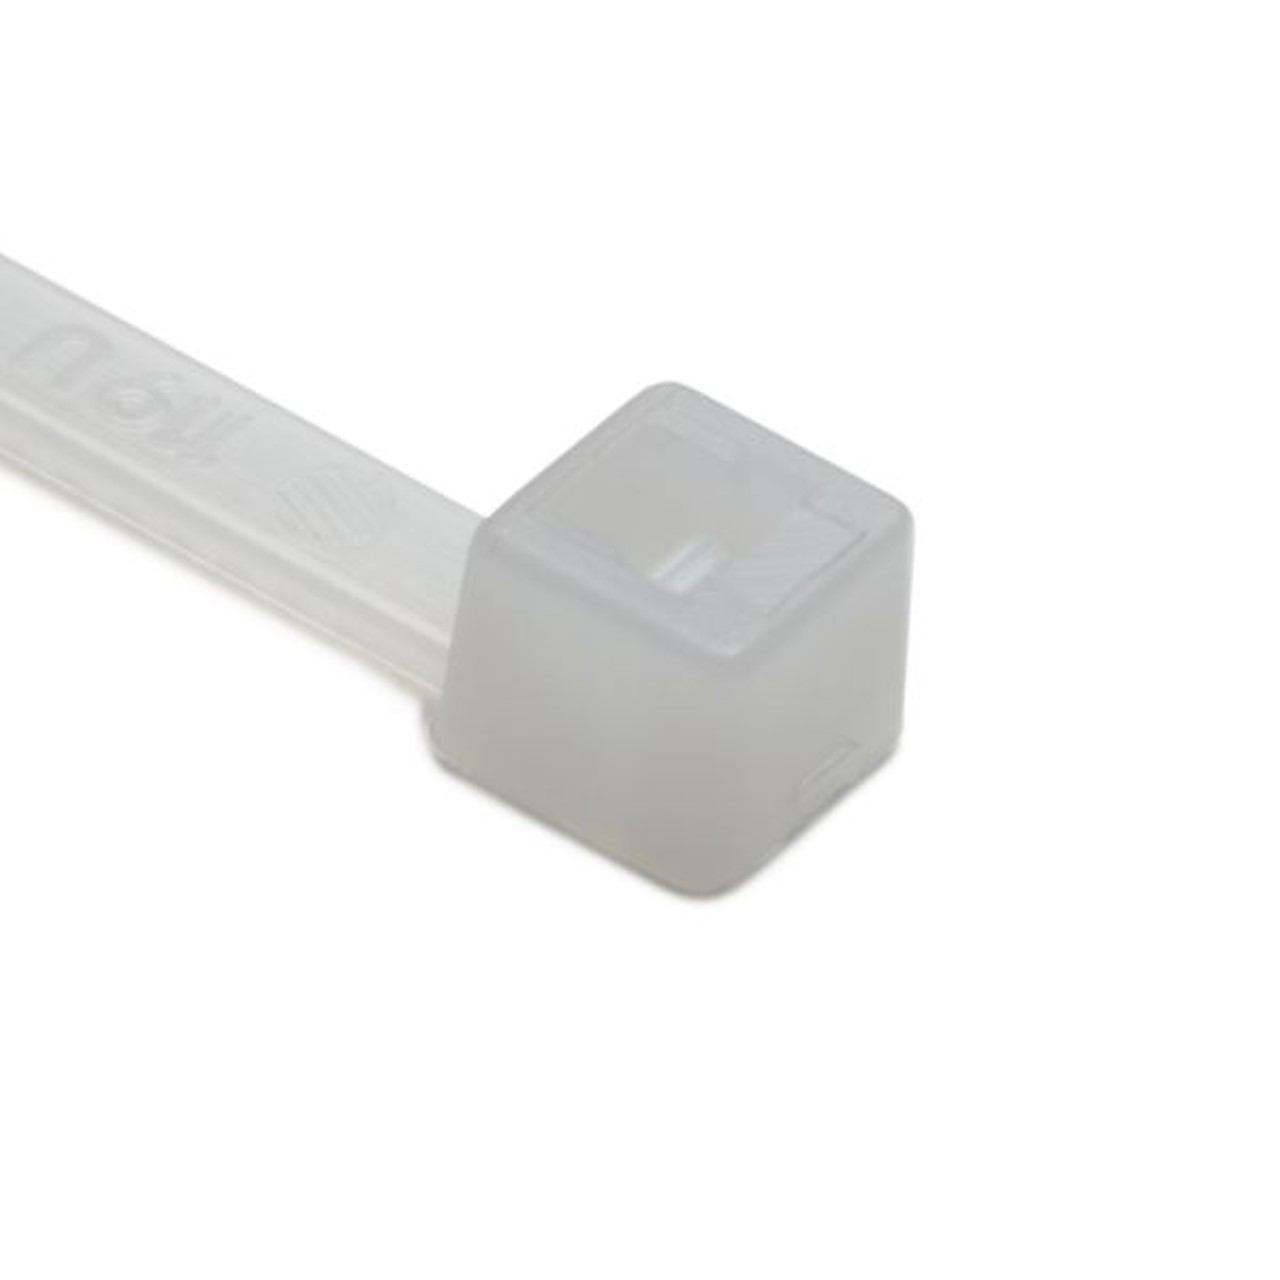 eacf09a02399 Cable Ties for higher chemical resistance for temperatures up to +115 °C in  Polypropylene